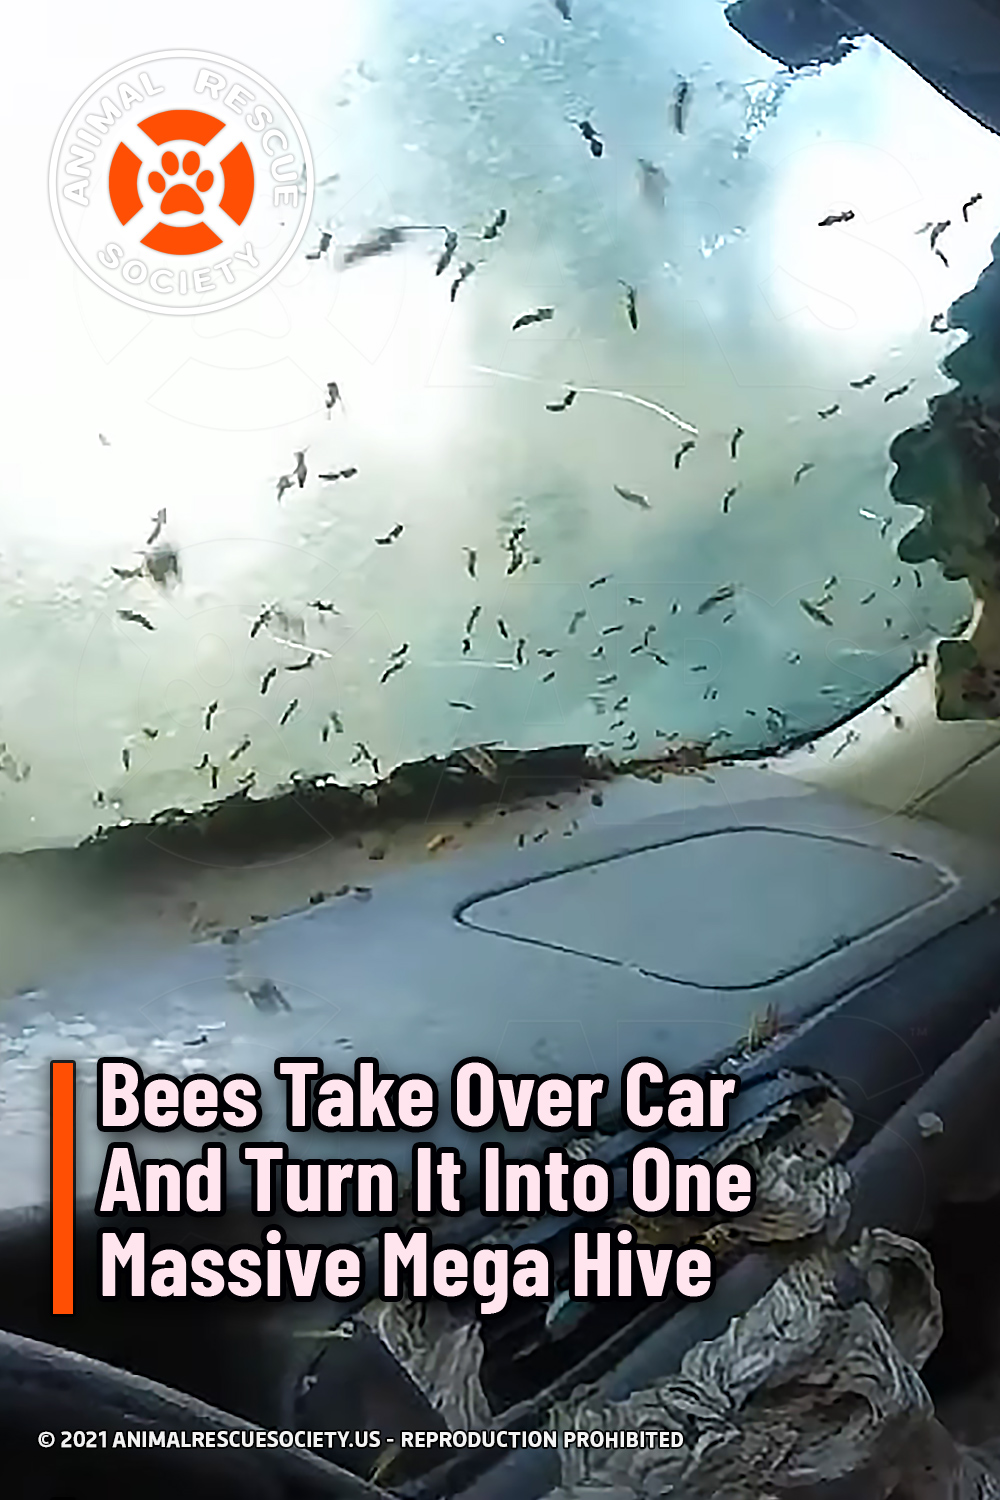 Bees Take Over Car And Turn It Into One Massive Mega Hive